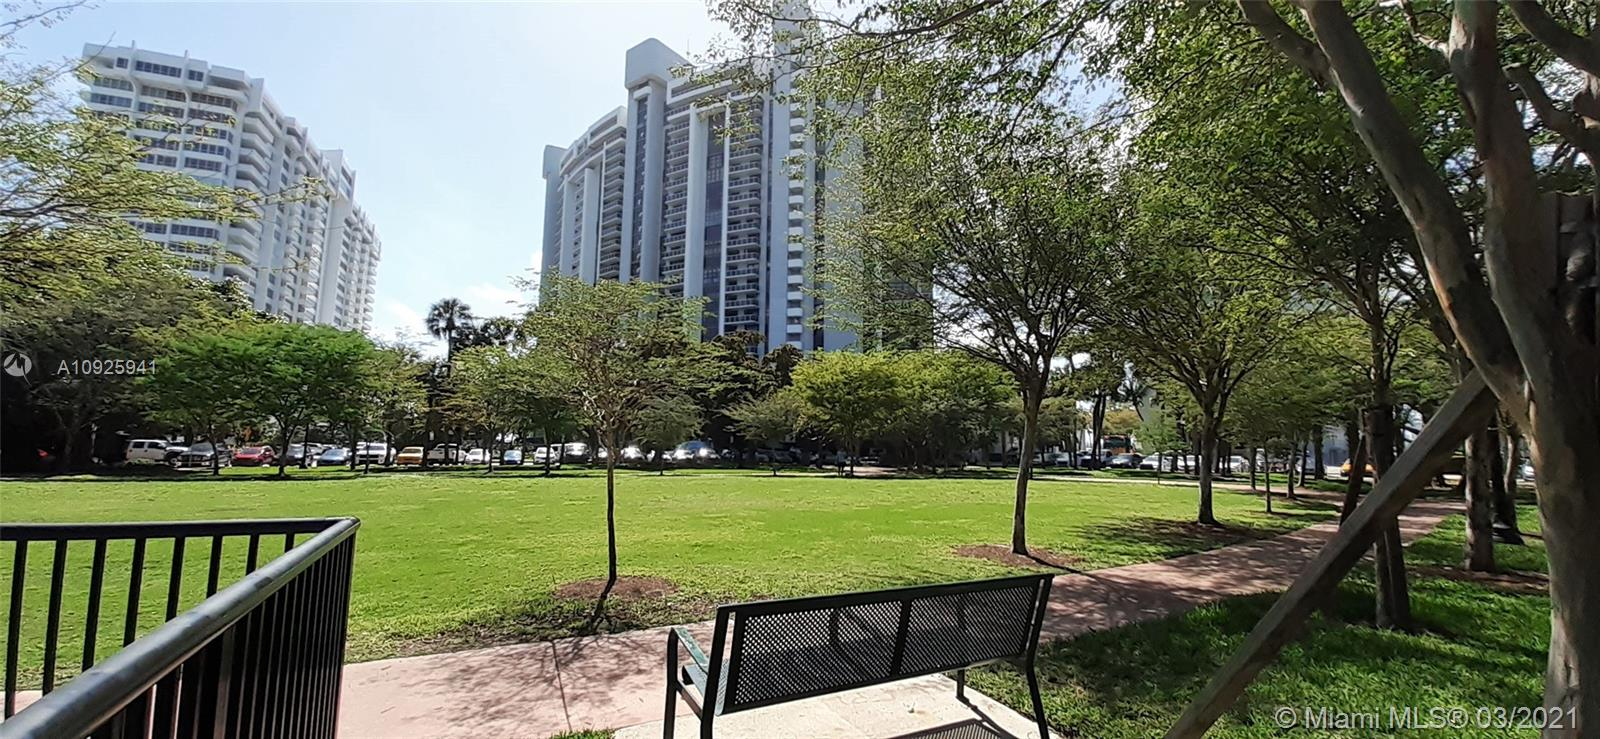 Nine Island Avenue #510 - 9 Island Ave #510, Miami Beach, FL 33139